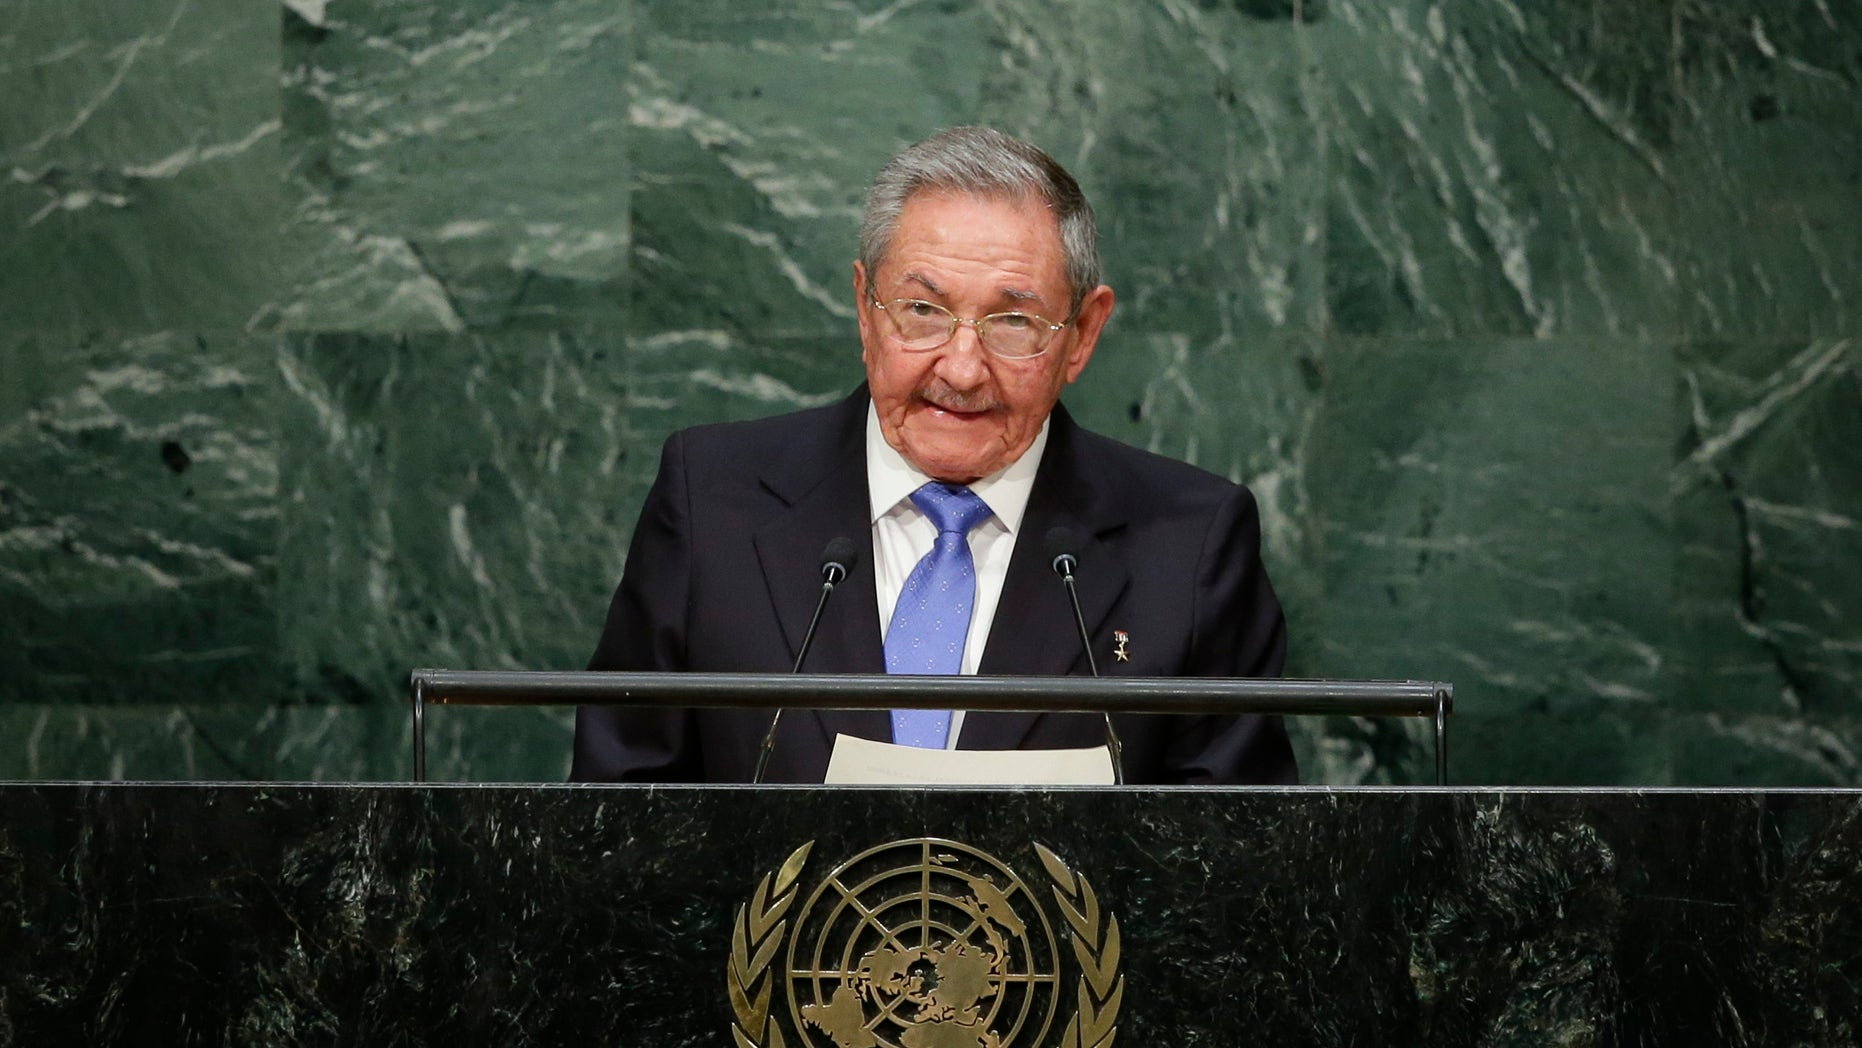 Cuba's President Raul Castro speaks during the General Assembly at Monday, Sept. 28, 2015.